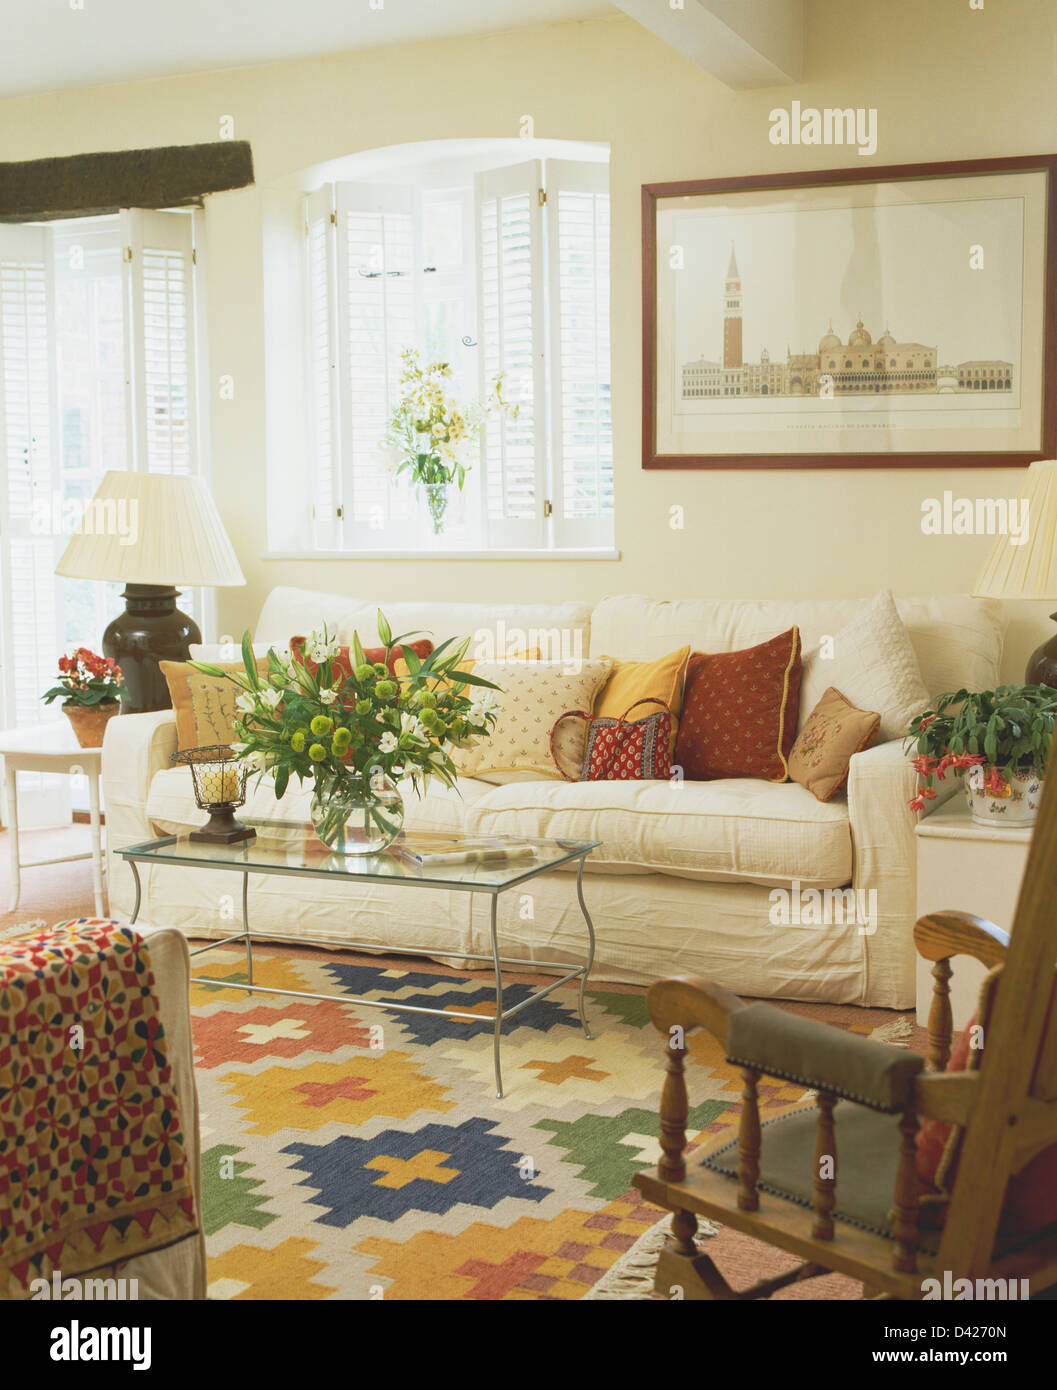 Stock Photo   White Plantation Shutters On Window Above Cream Sofa In  Cottage Living Room With Kelim Carpet And Glass Coffee Table